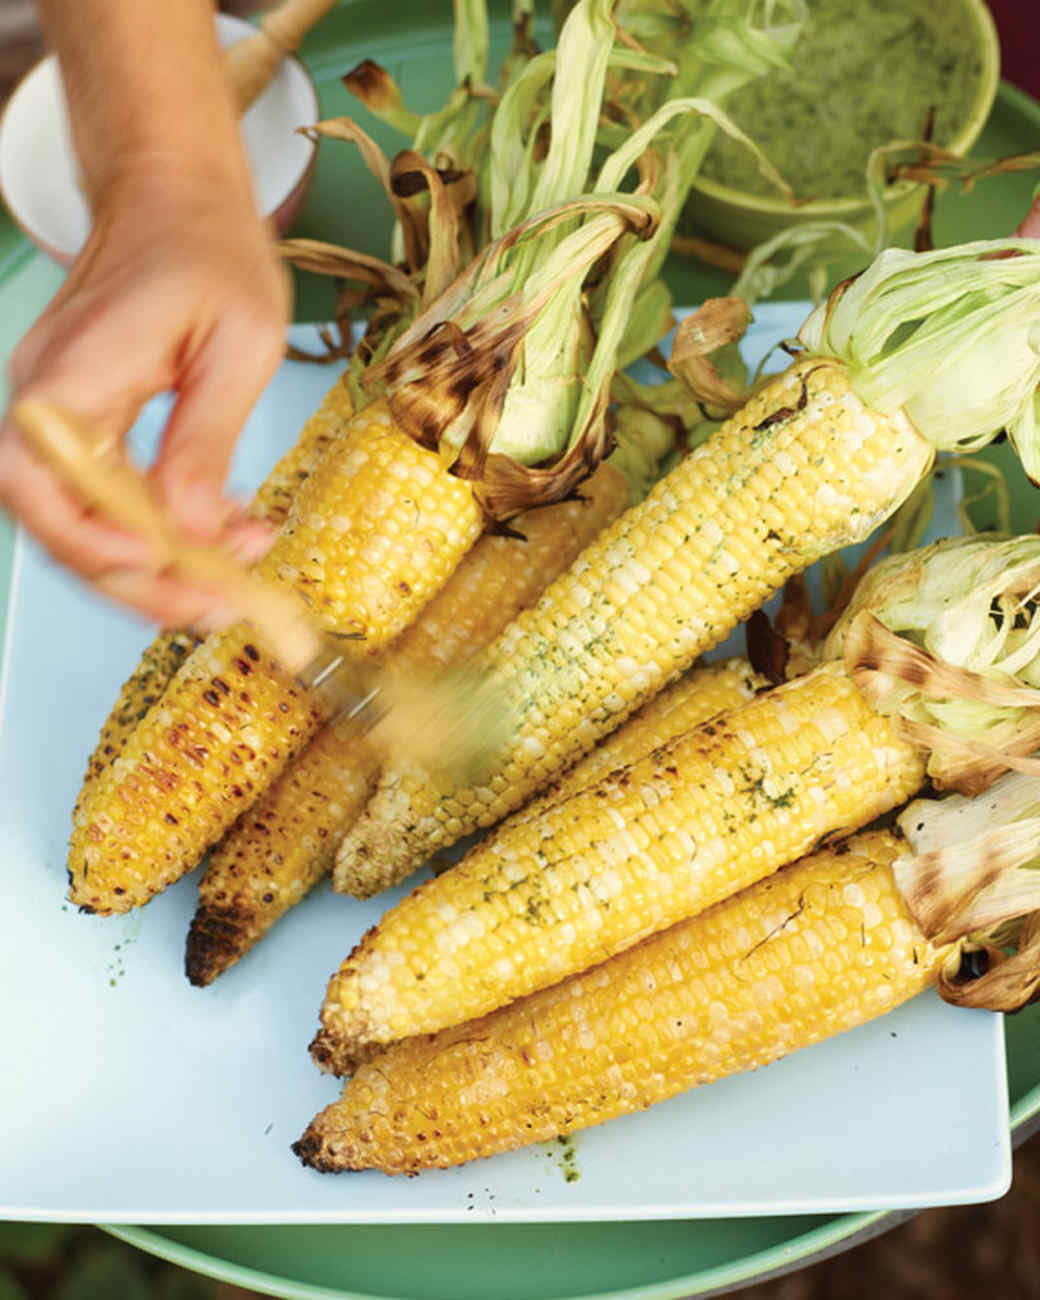 mld106444_0311_a100813_roasted_corn.jpg